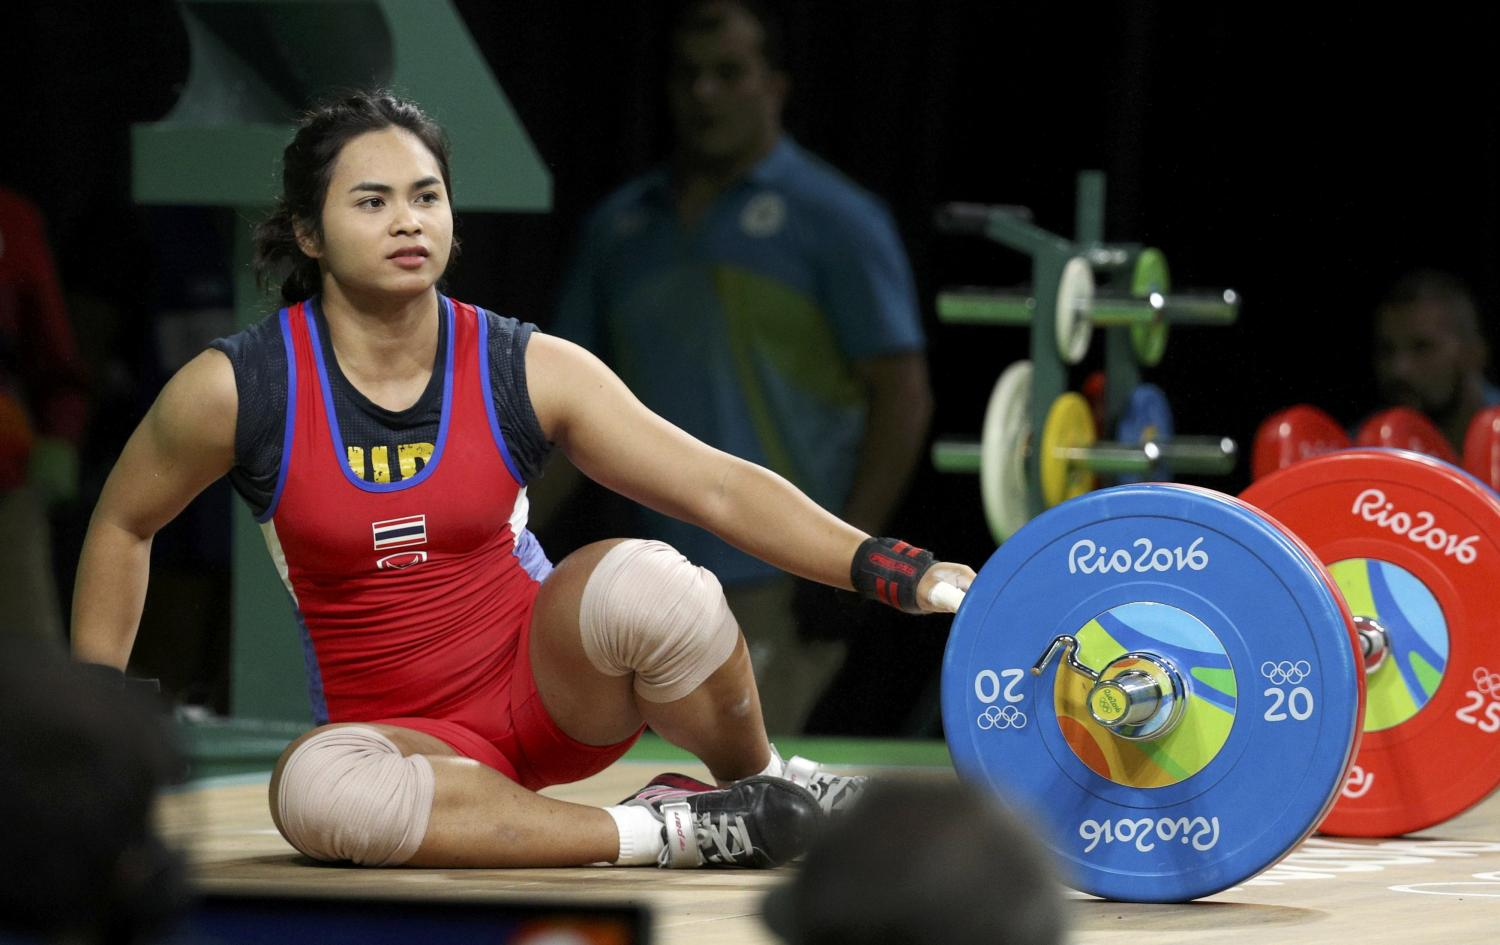 Siripuch (formerly Rattikan) Gulnoi competes at the 2016 Olympics.(Reuters photo)